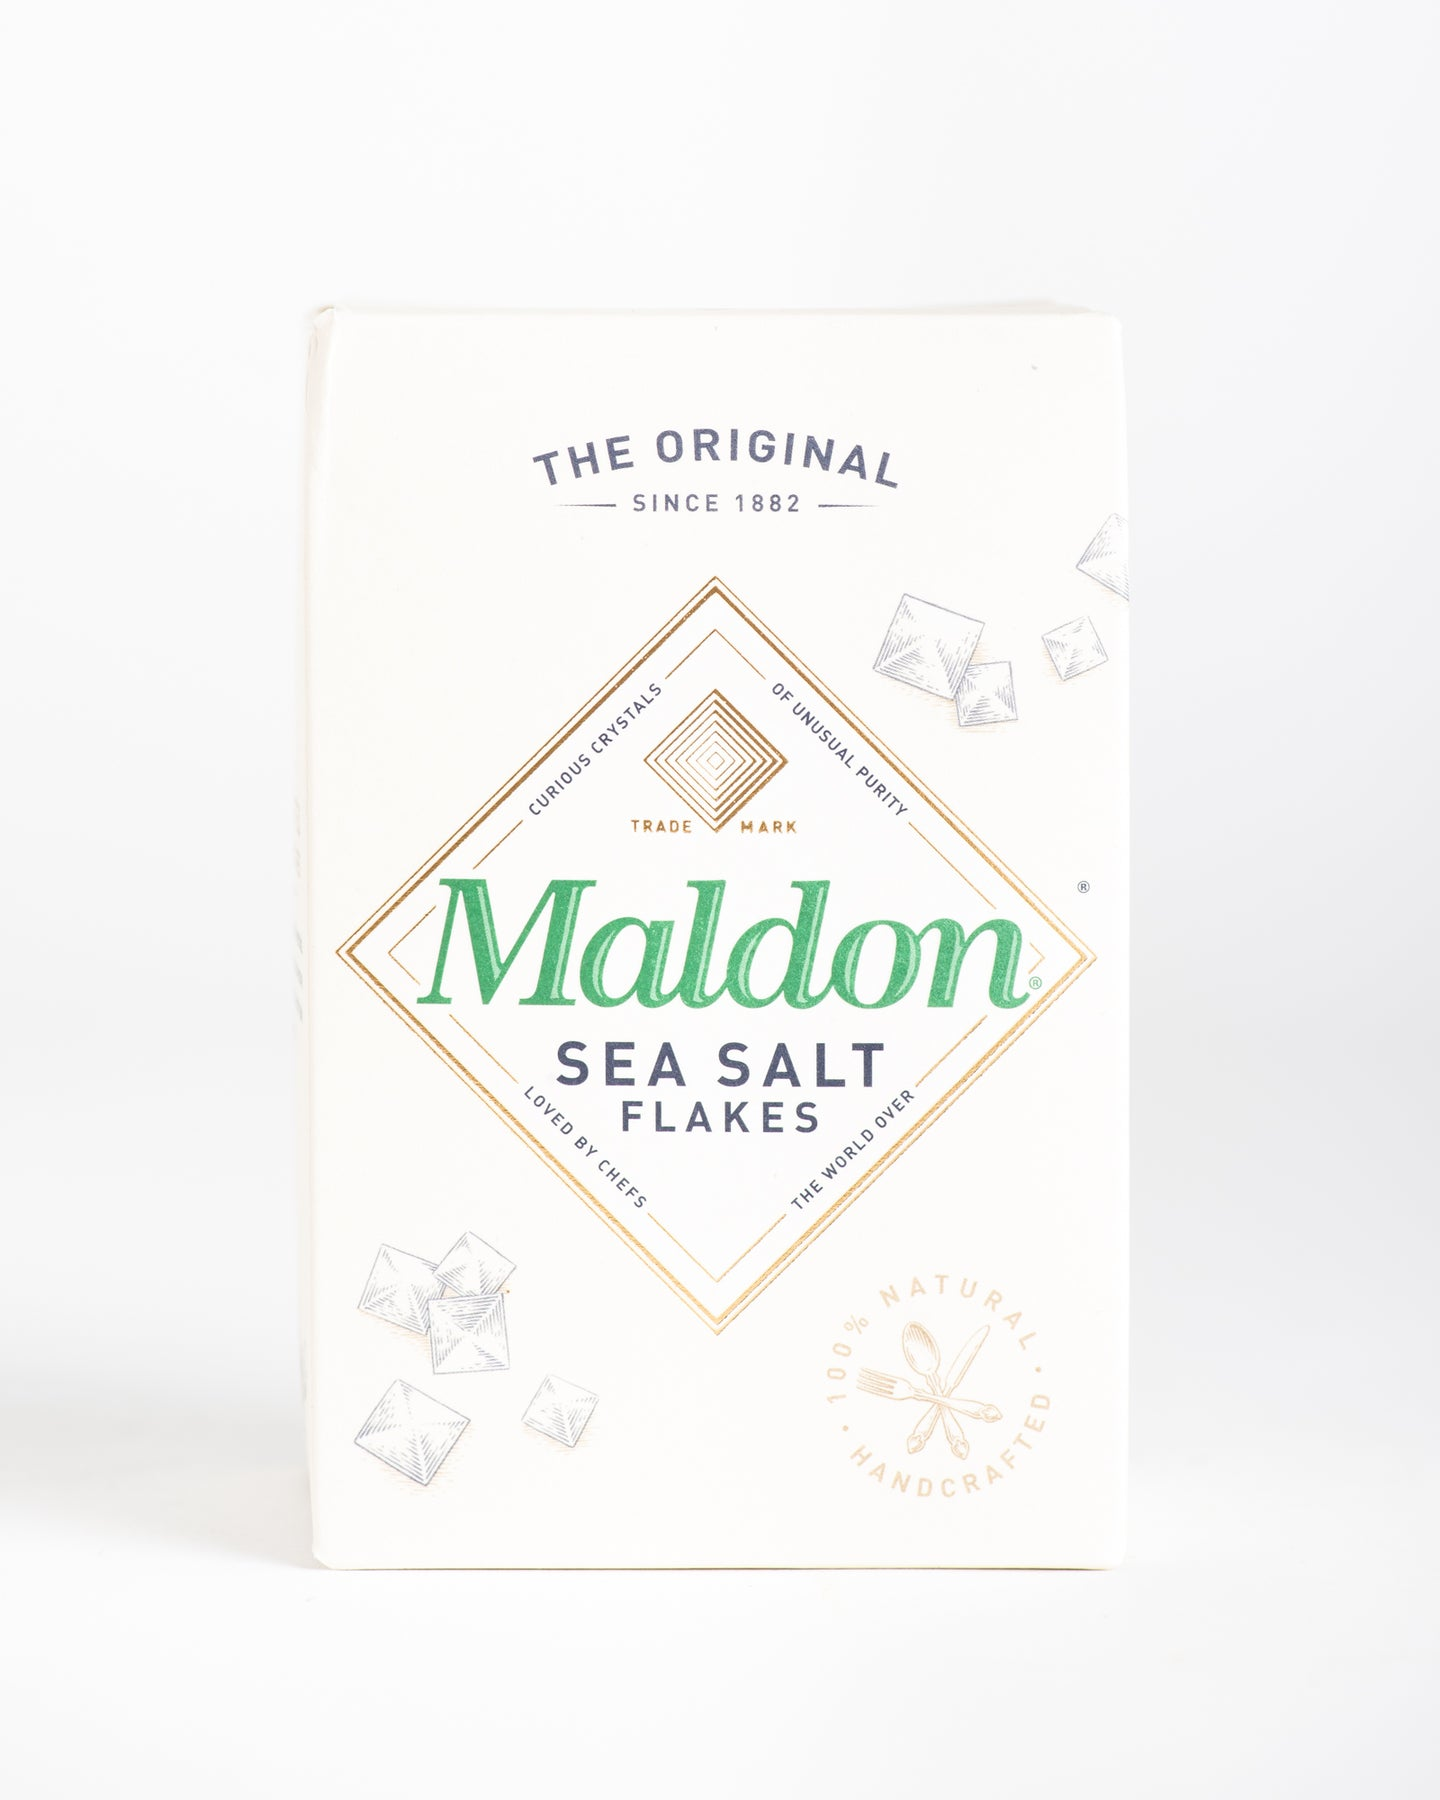 Maldon - Sea Salt Flakes      .